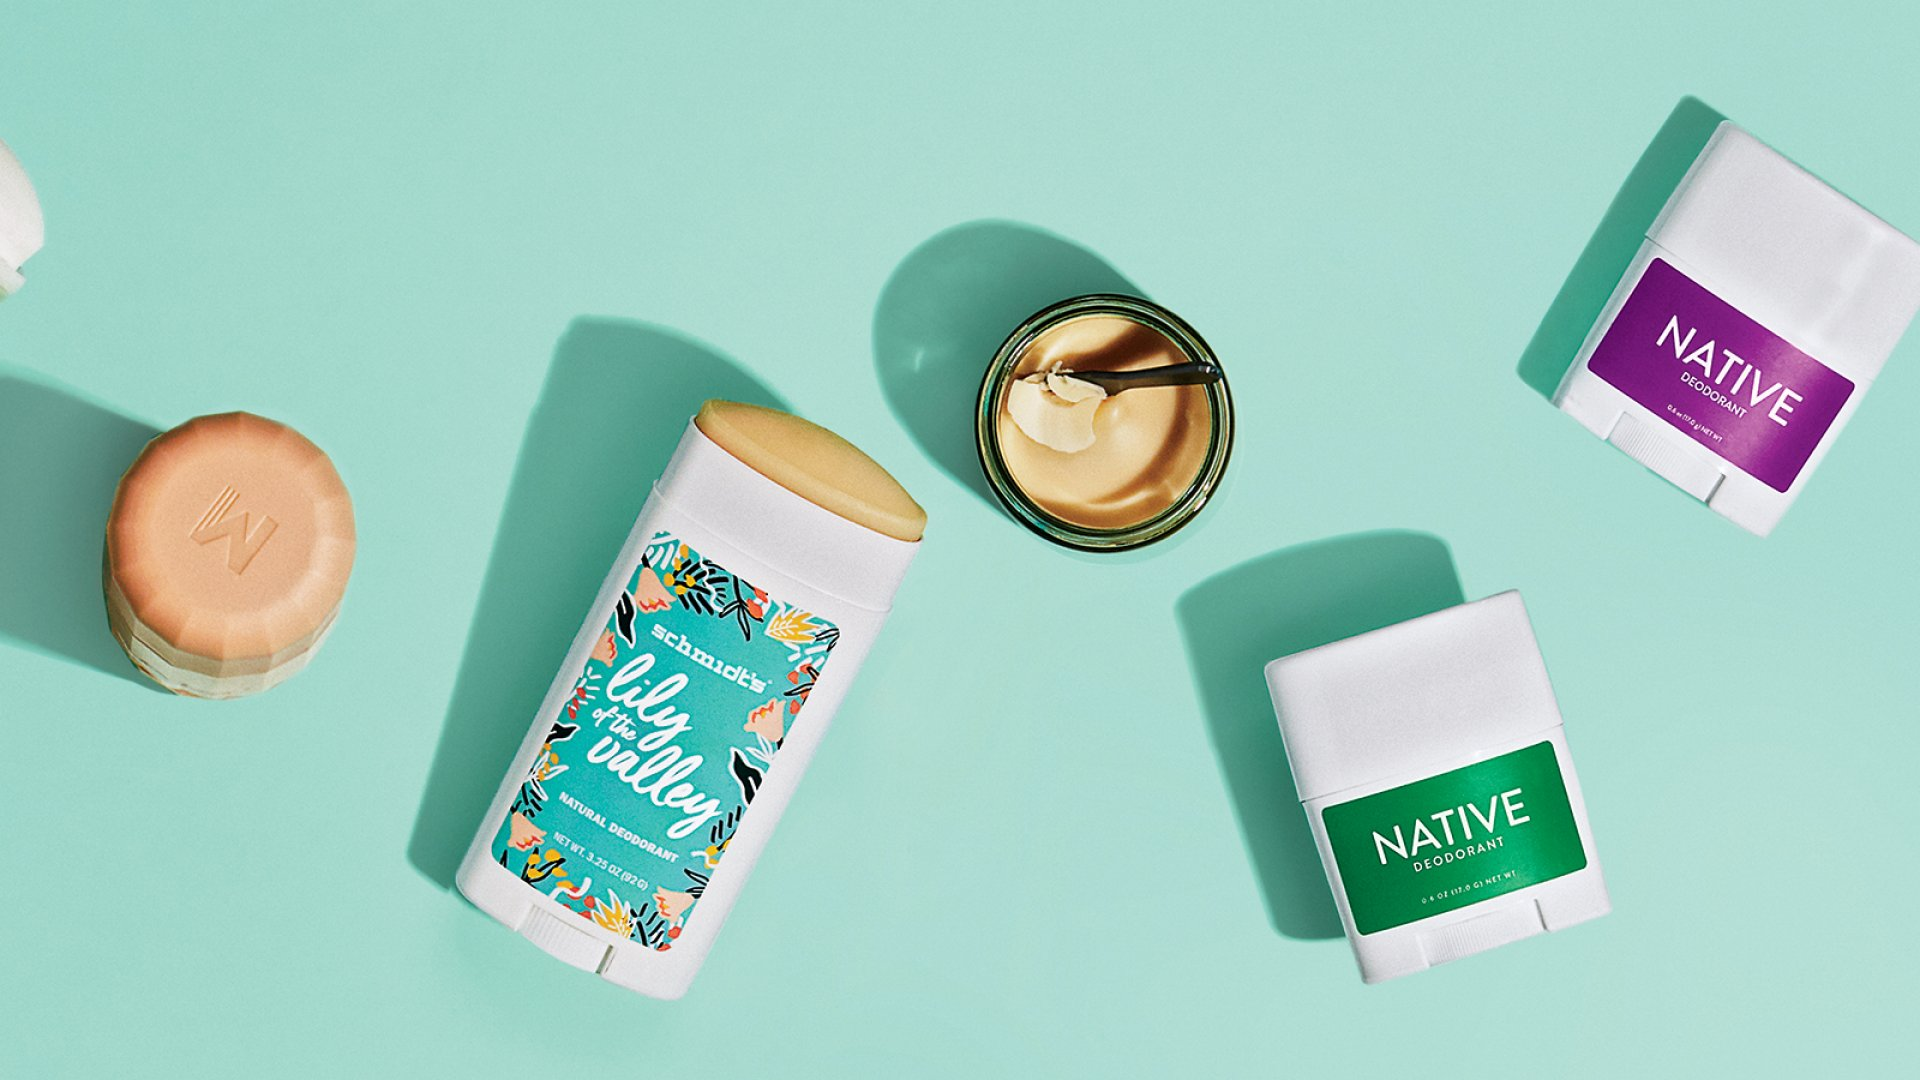 founders who helped turn deodorant into